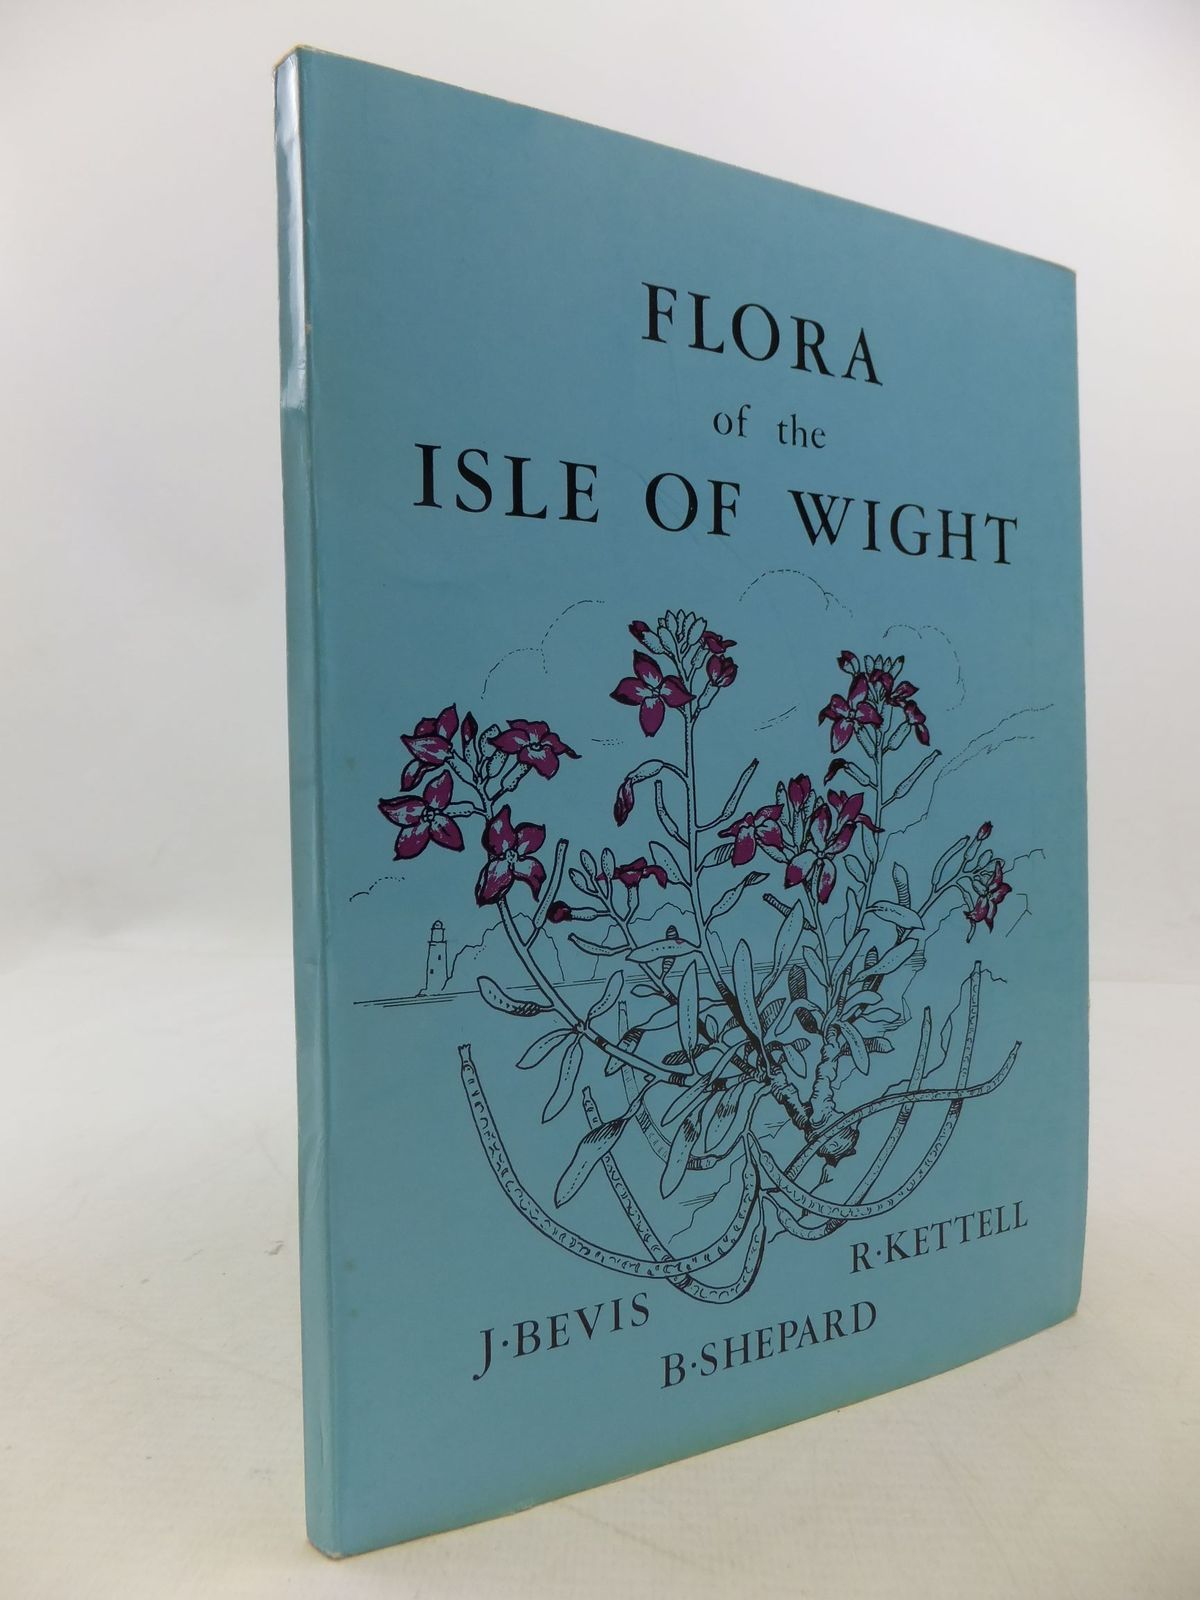 Photo of FLORA OF THE ISLE OF WIGHT written by Bevis, J.H. Kettell, R.E. Shepard, B. Frazer, O.H. published by Isle of Wight Archaeological Society (STOCK CODE: 2112324)  for sale by Stella & Rose's Books